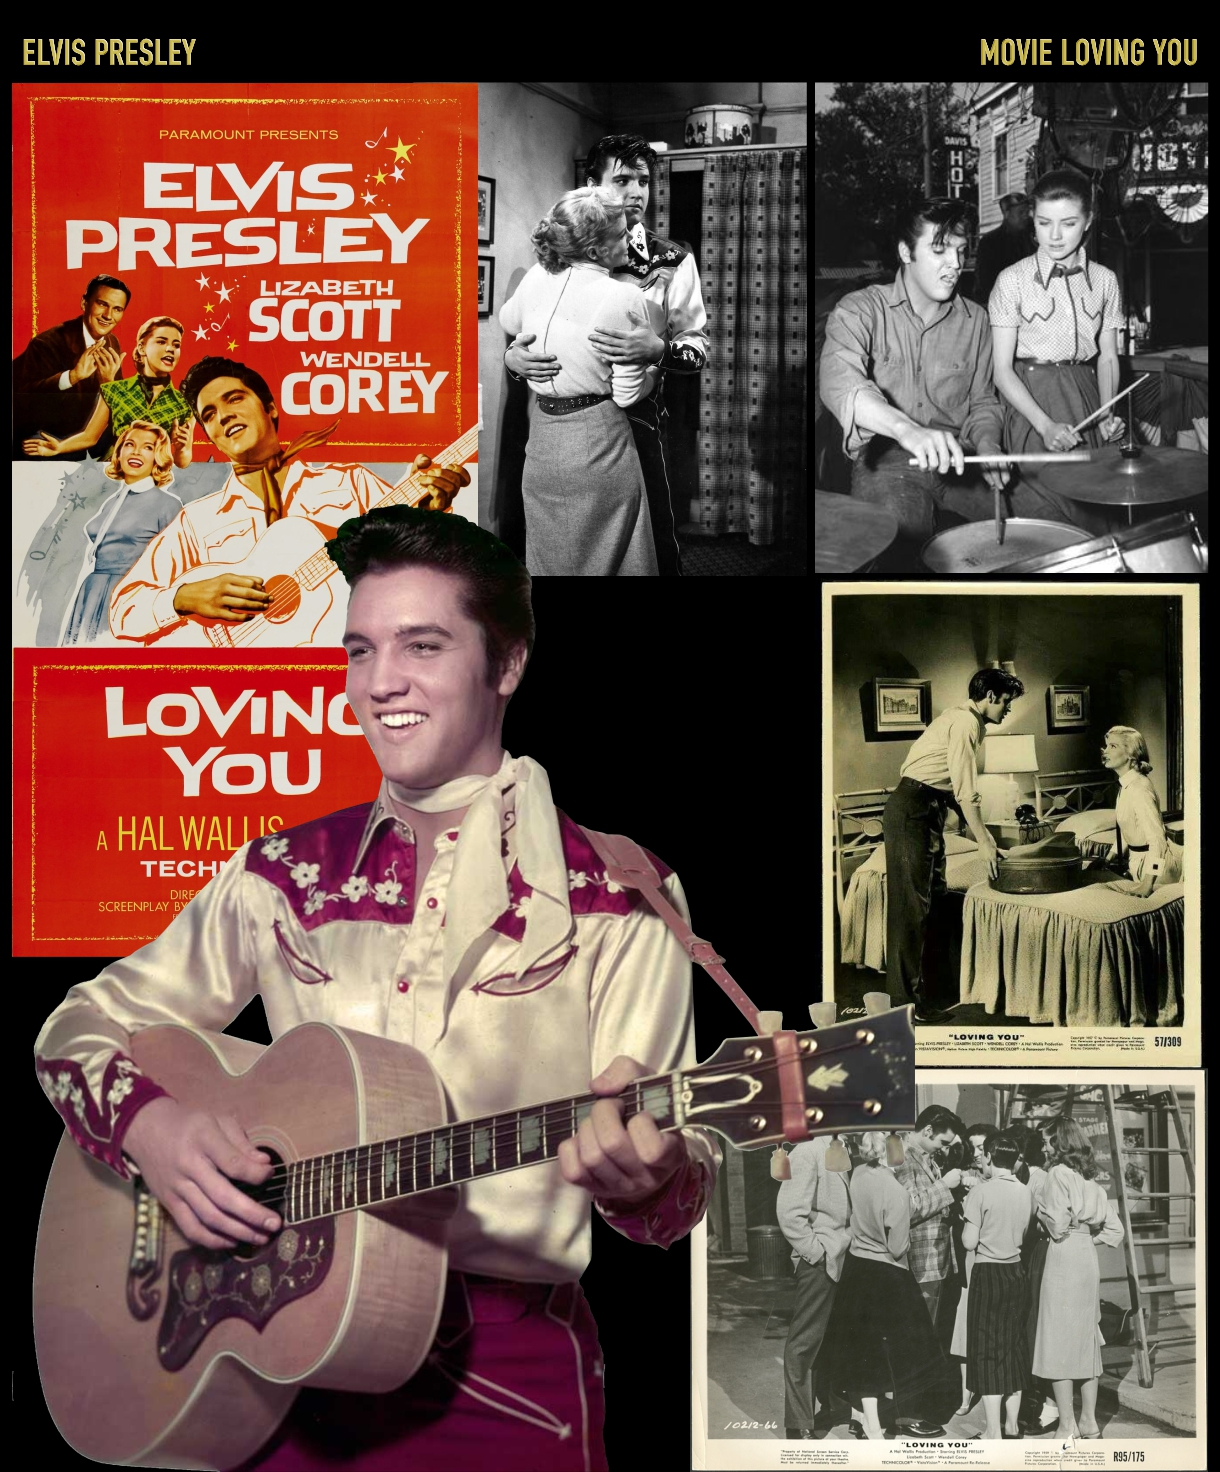 570622_Elvis Presley_Loving You_02